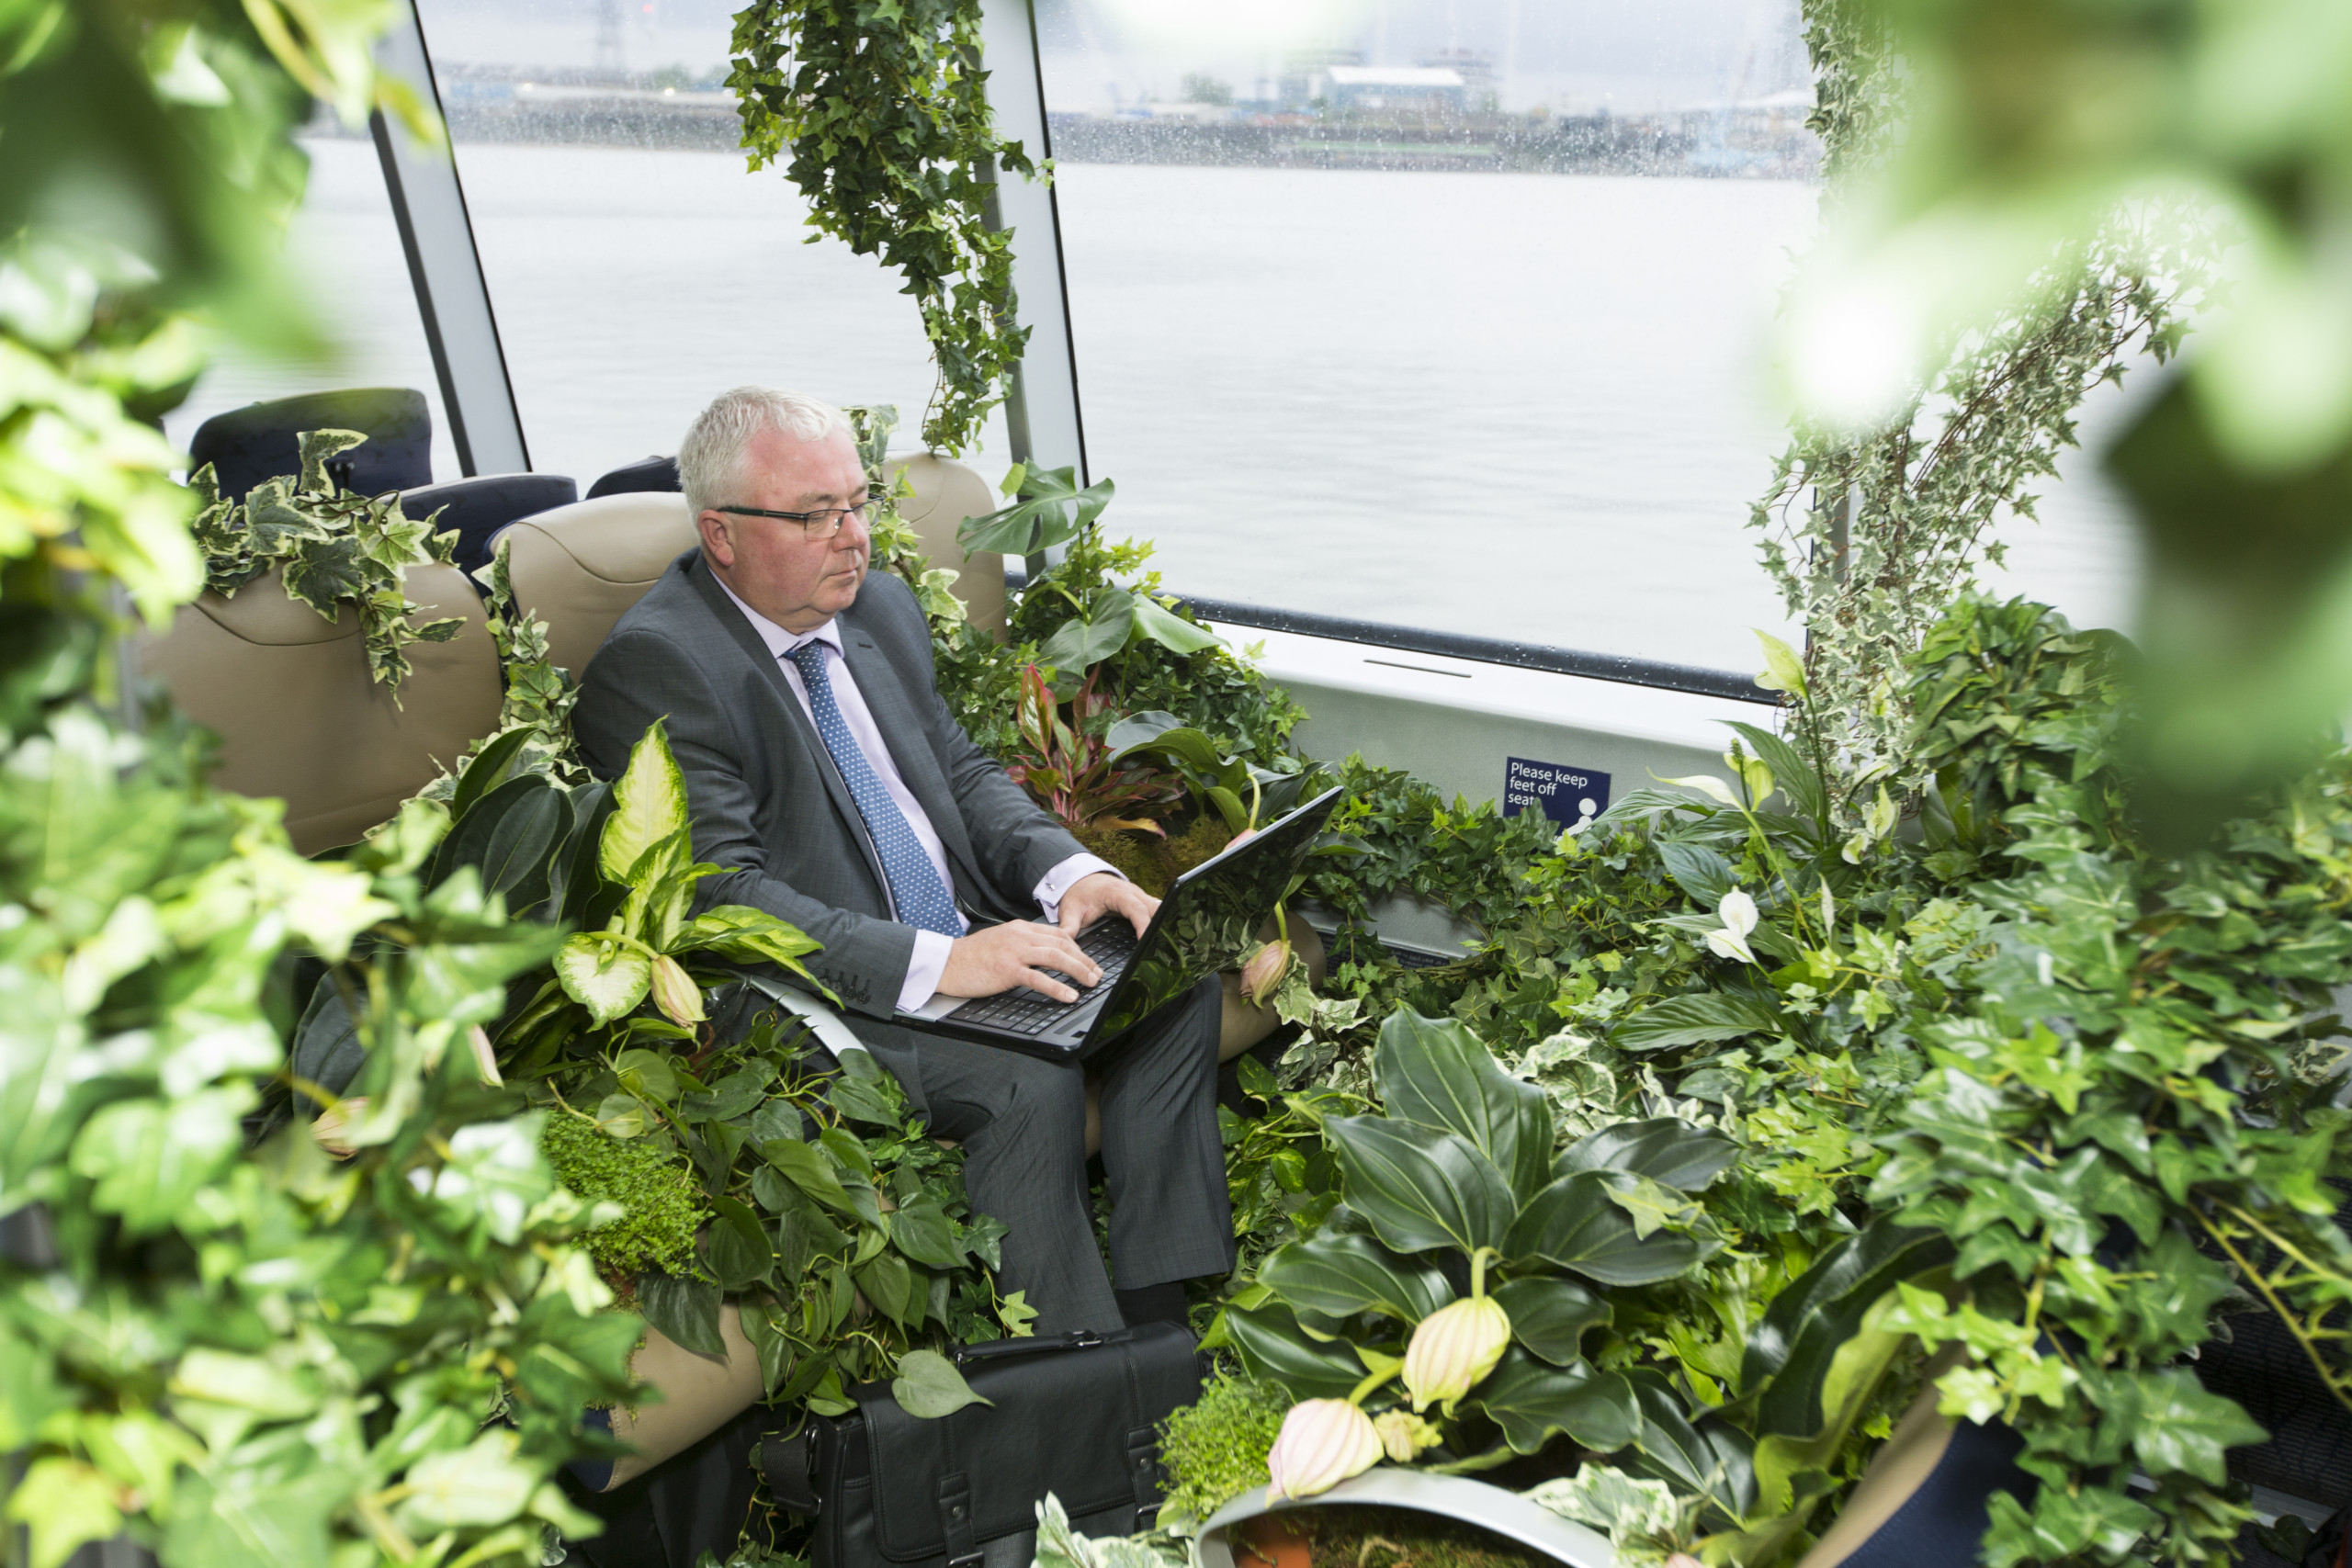 National Plants at Work Week. Efig Ltd have teamed up with Transport for London to plant up a Thames Clipper on Monday 13th July 2015